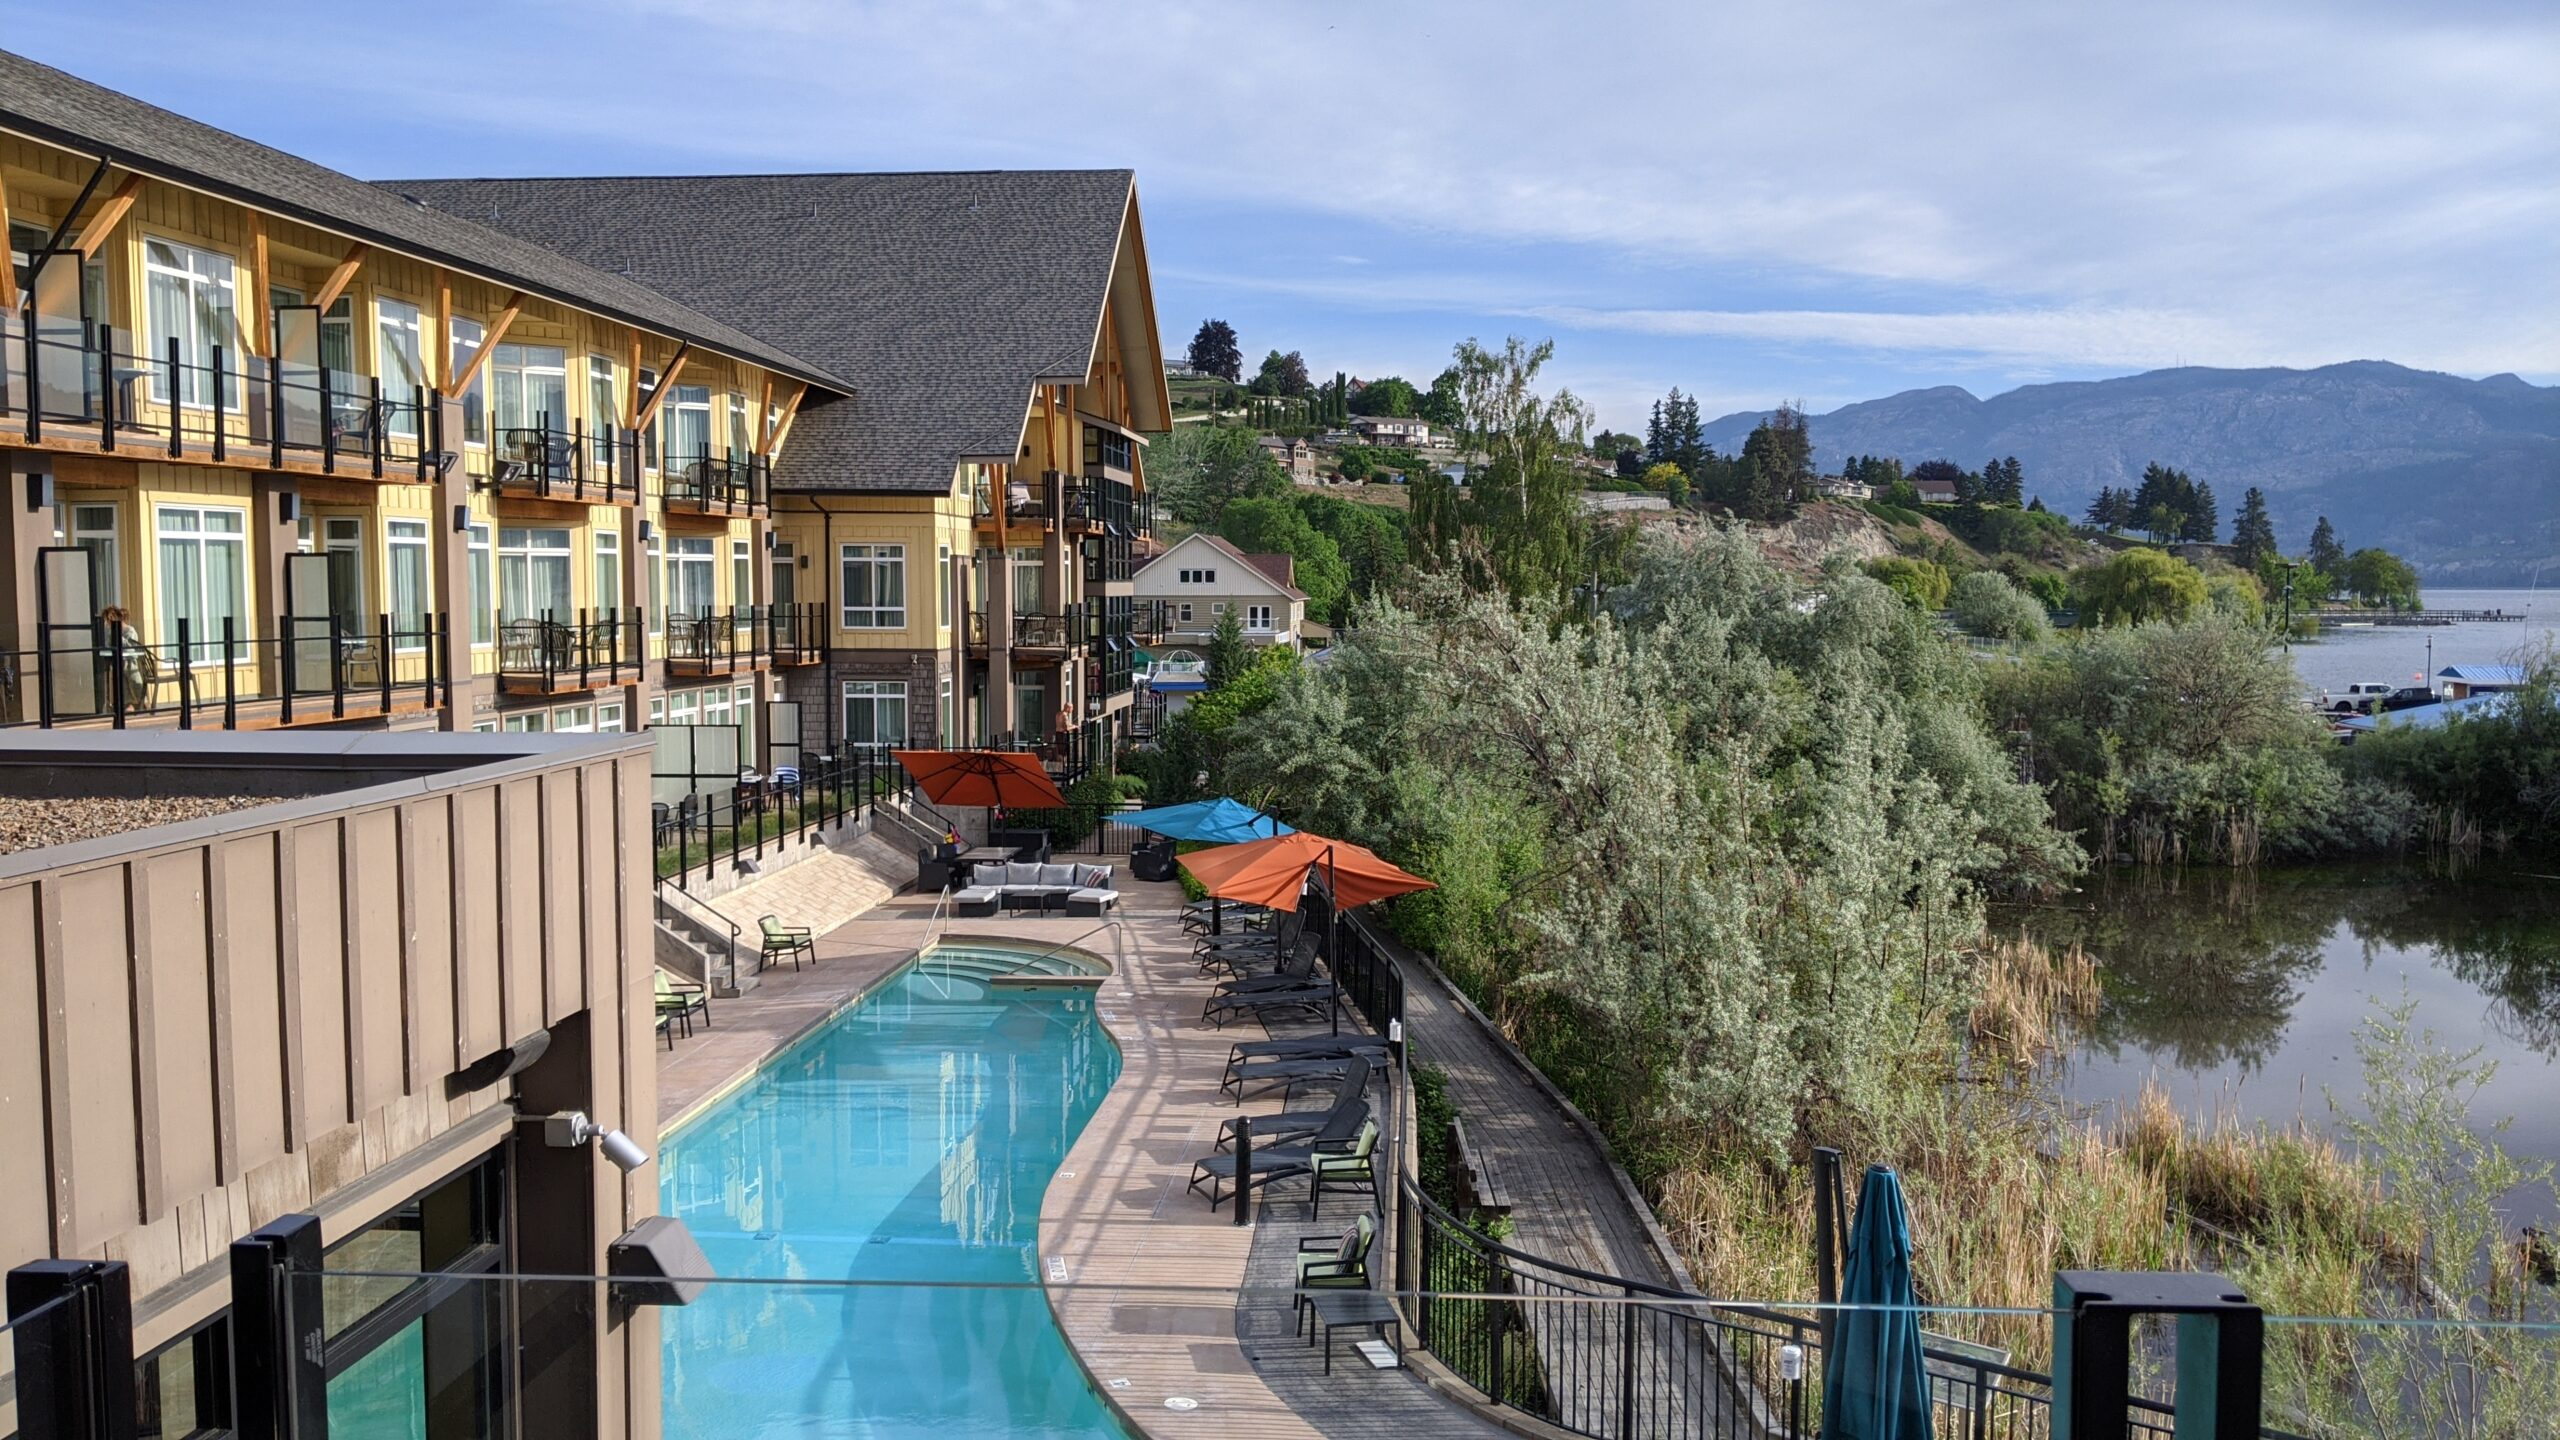 Summerland Resort main pool